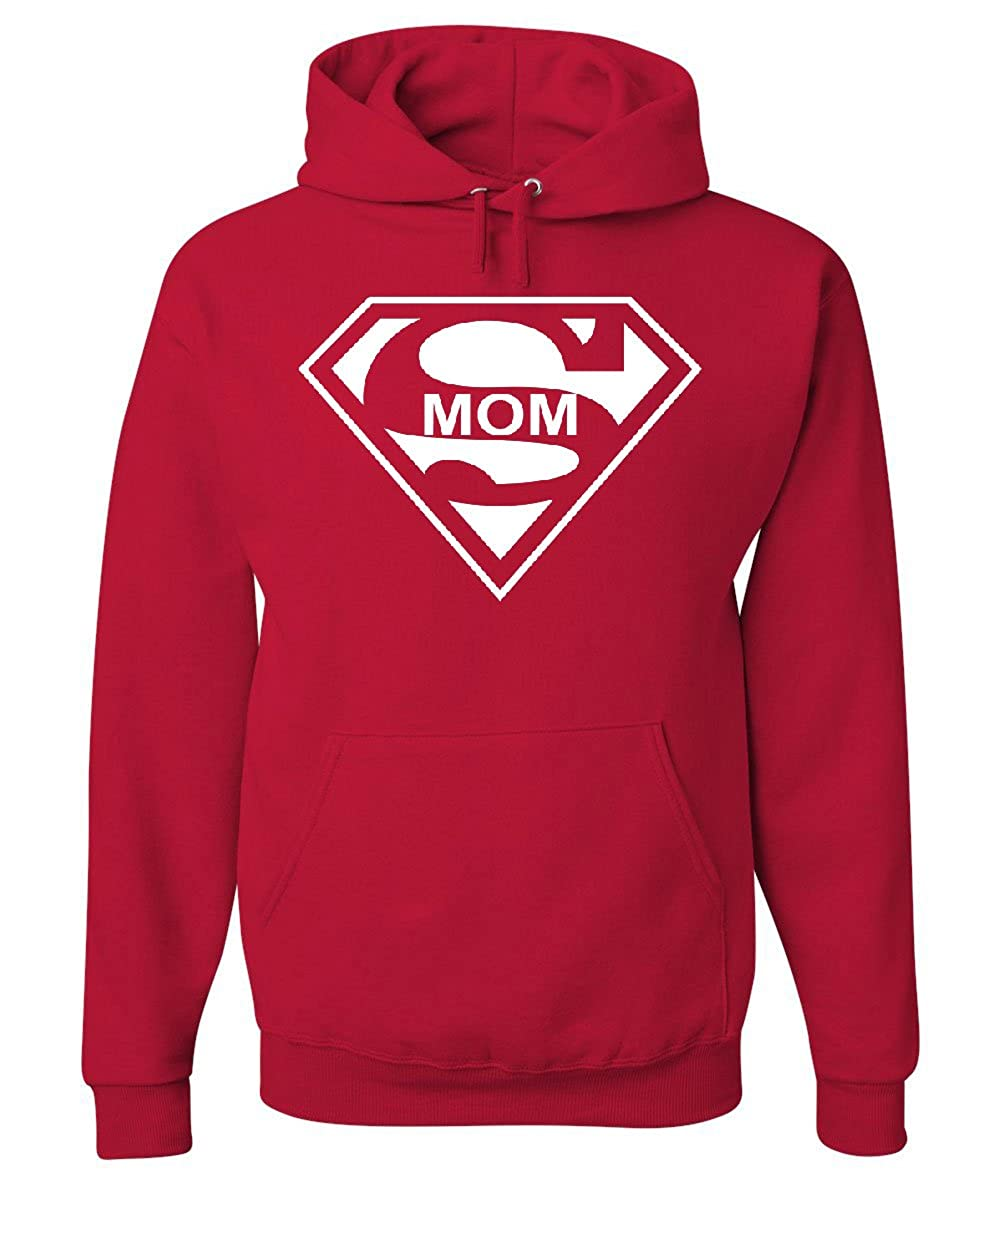 Tee Hunt Super Mom Funny Hoodie Superhero Parody Mother's Day Sweatshirt 100407-S-S-PURPL-$P